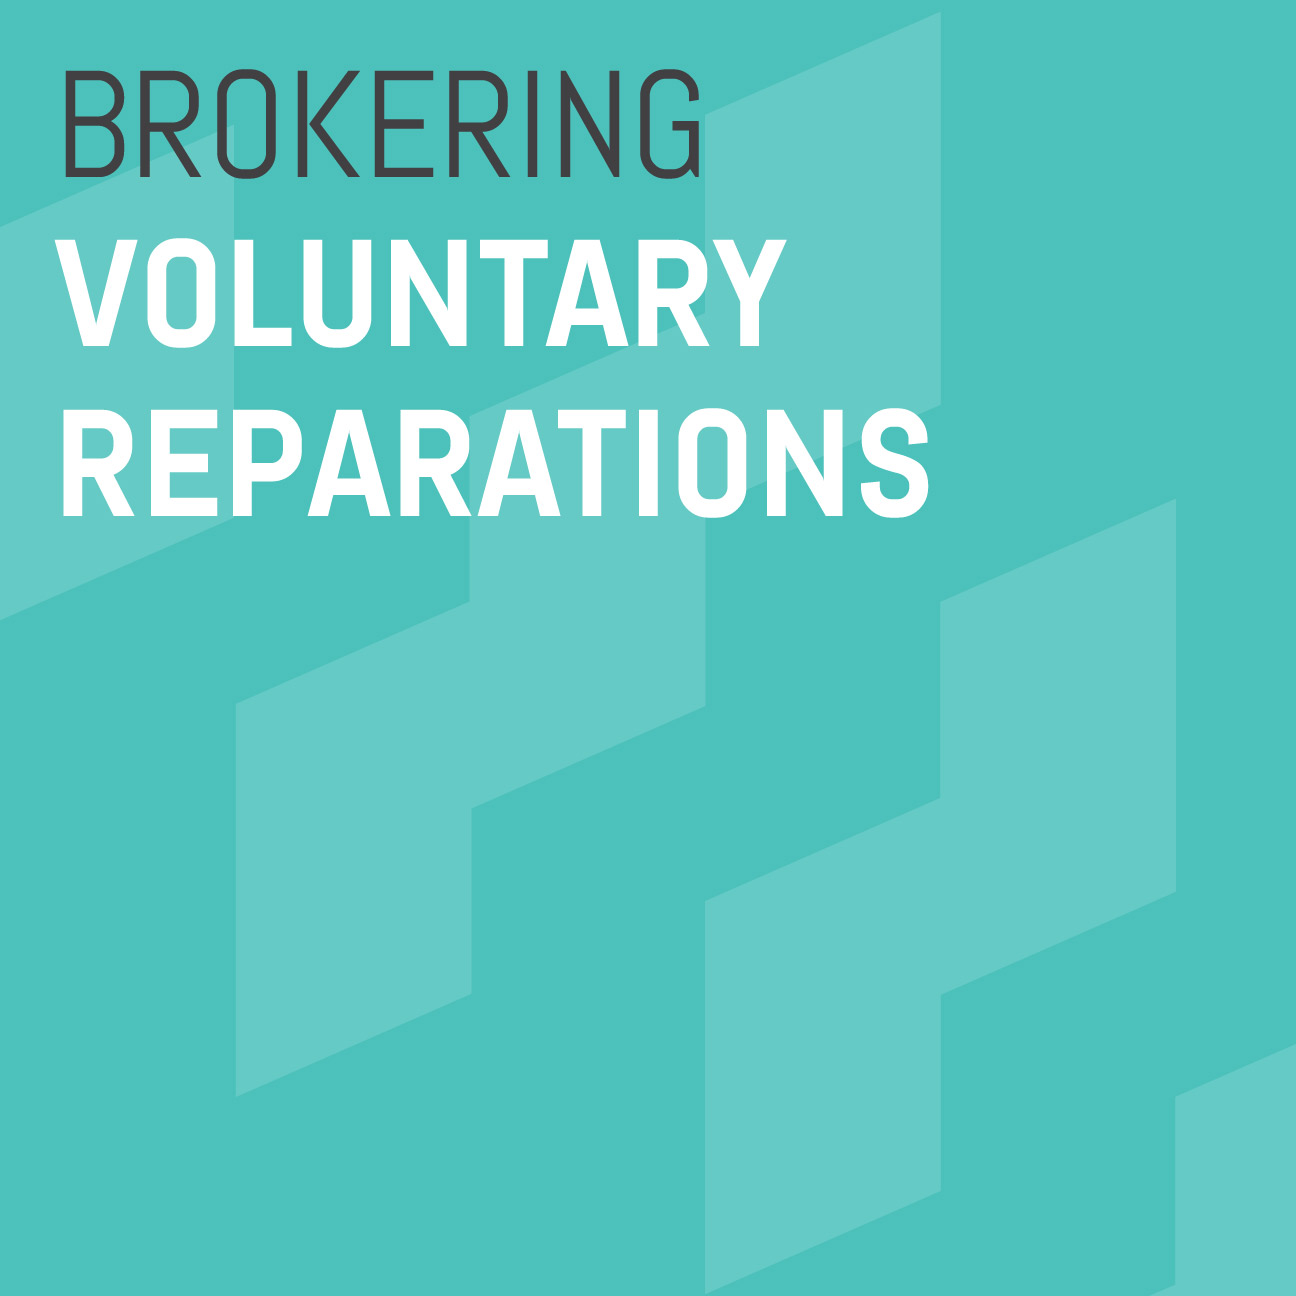 Brokering-Voluntary-Reparation.jpg